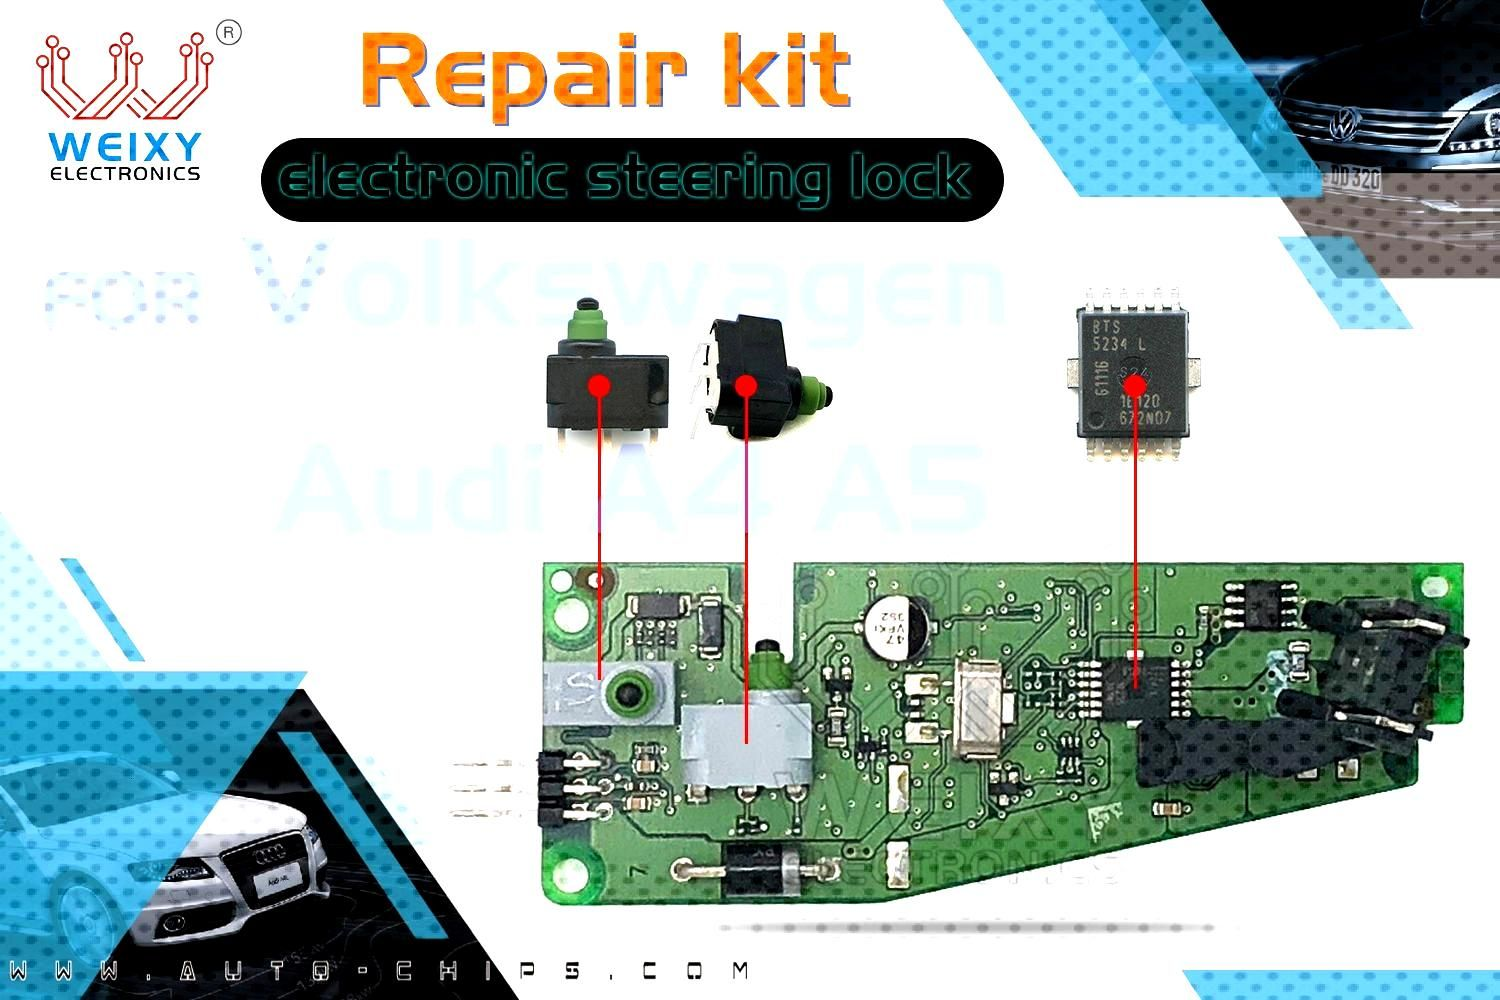 Repair kit for Volkswagen Audi A4 A5 electronic steering lock